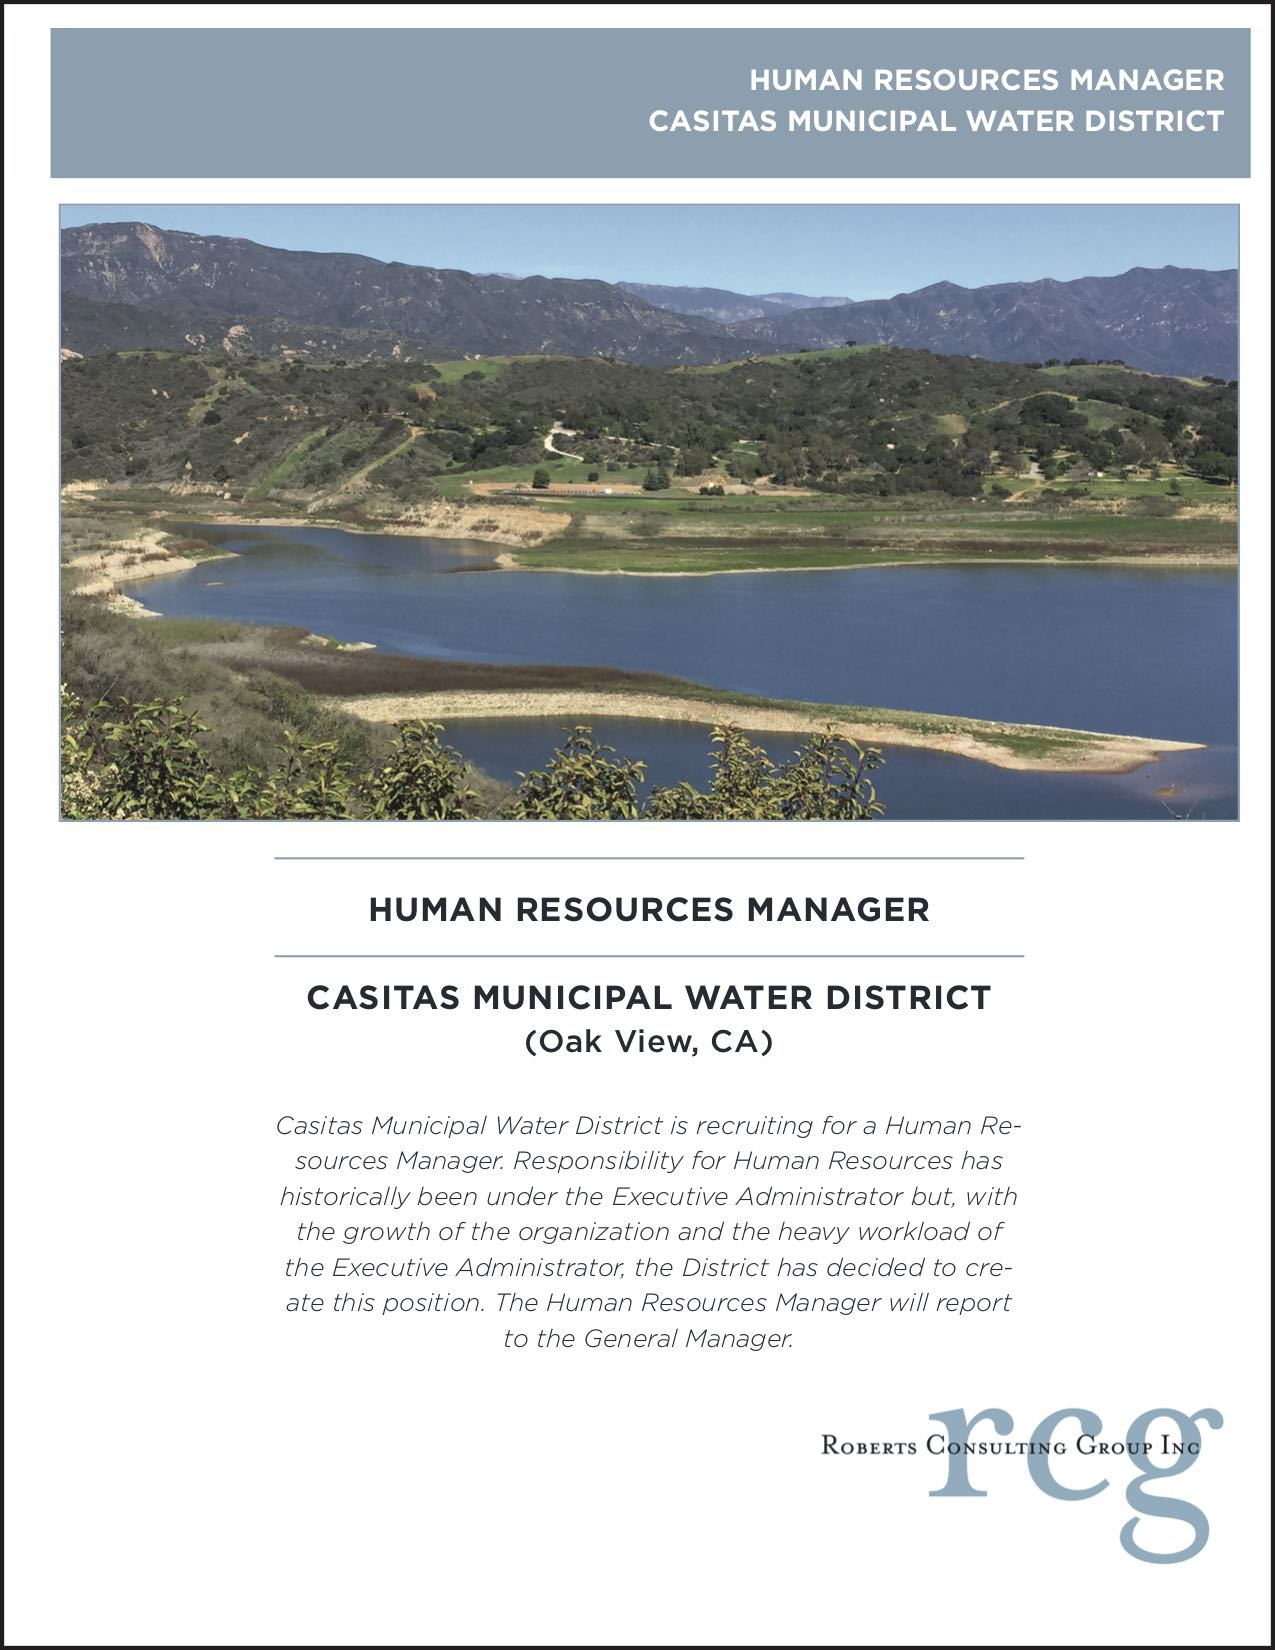 rcg_CasitasWD_HR_brochure_cover_frame.jpg